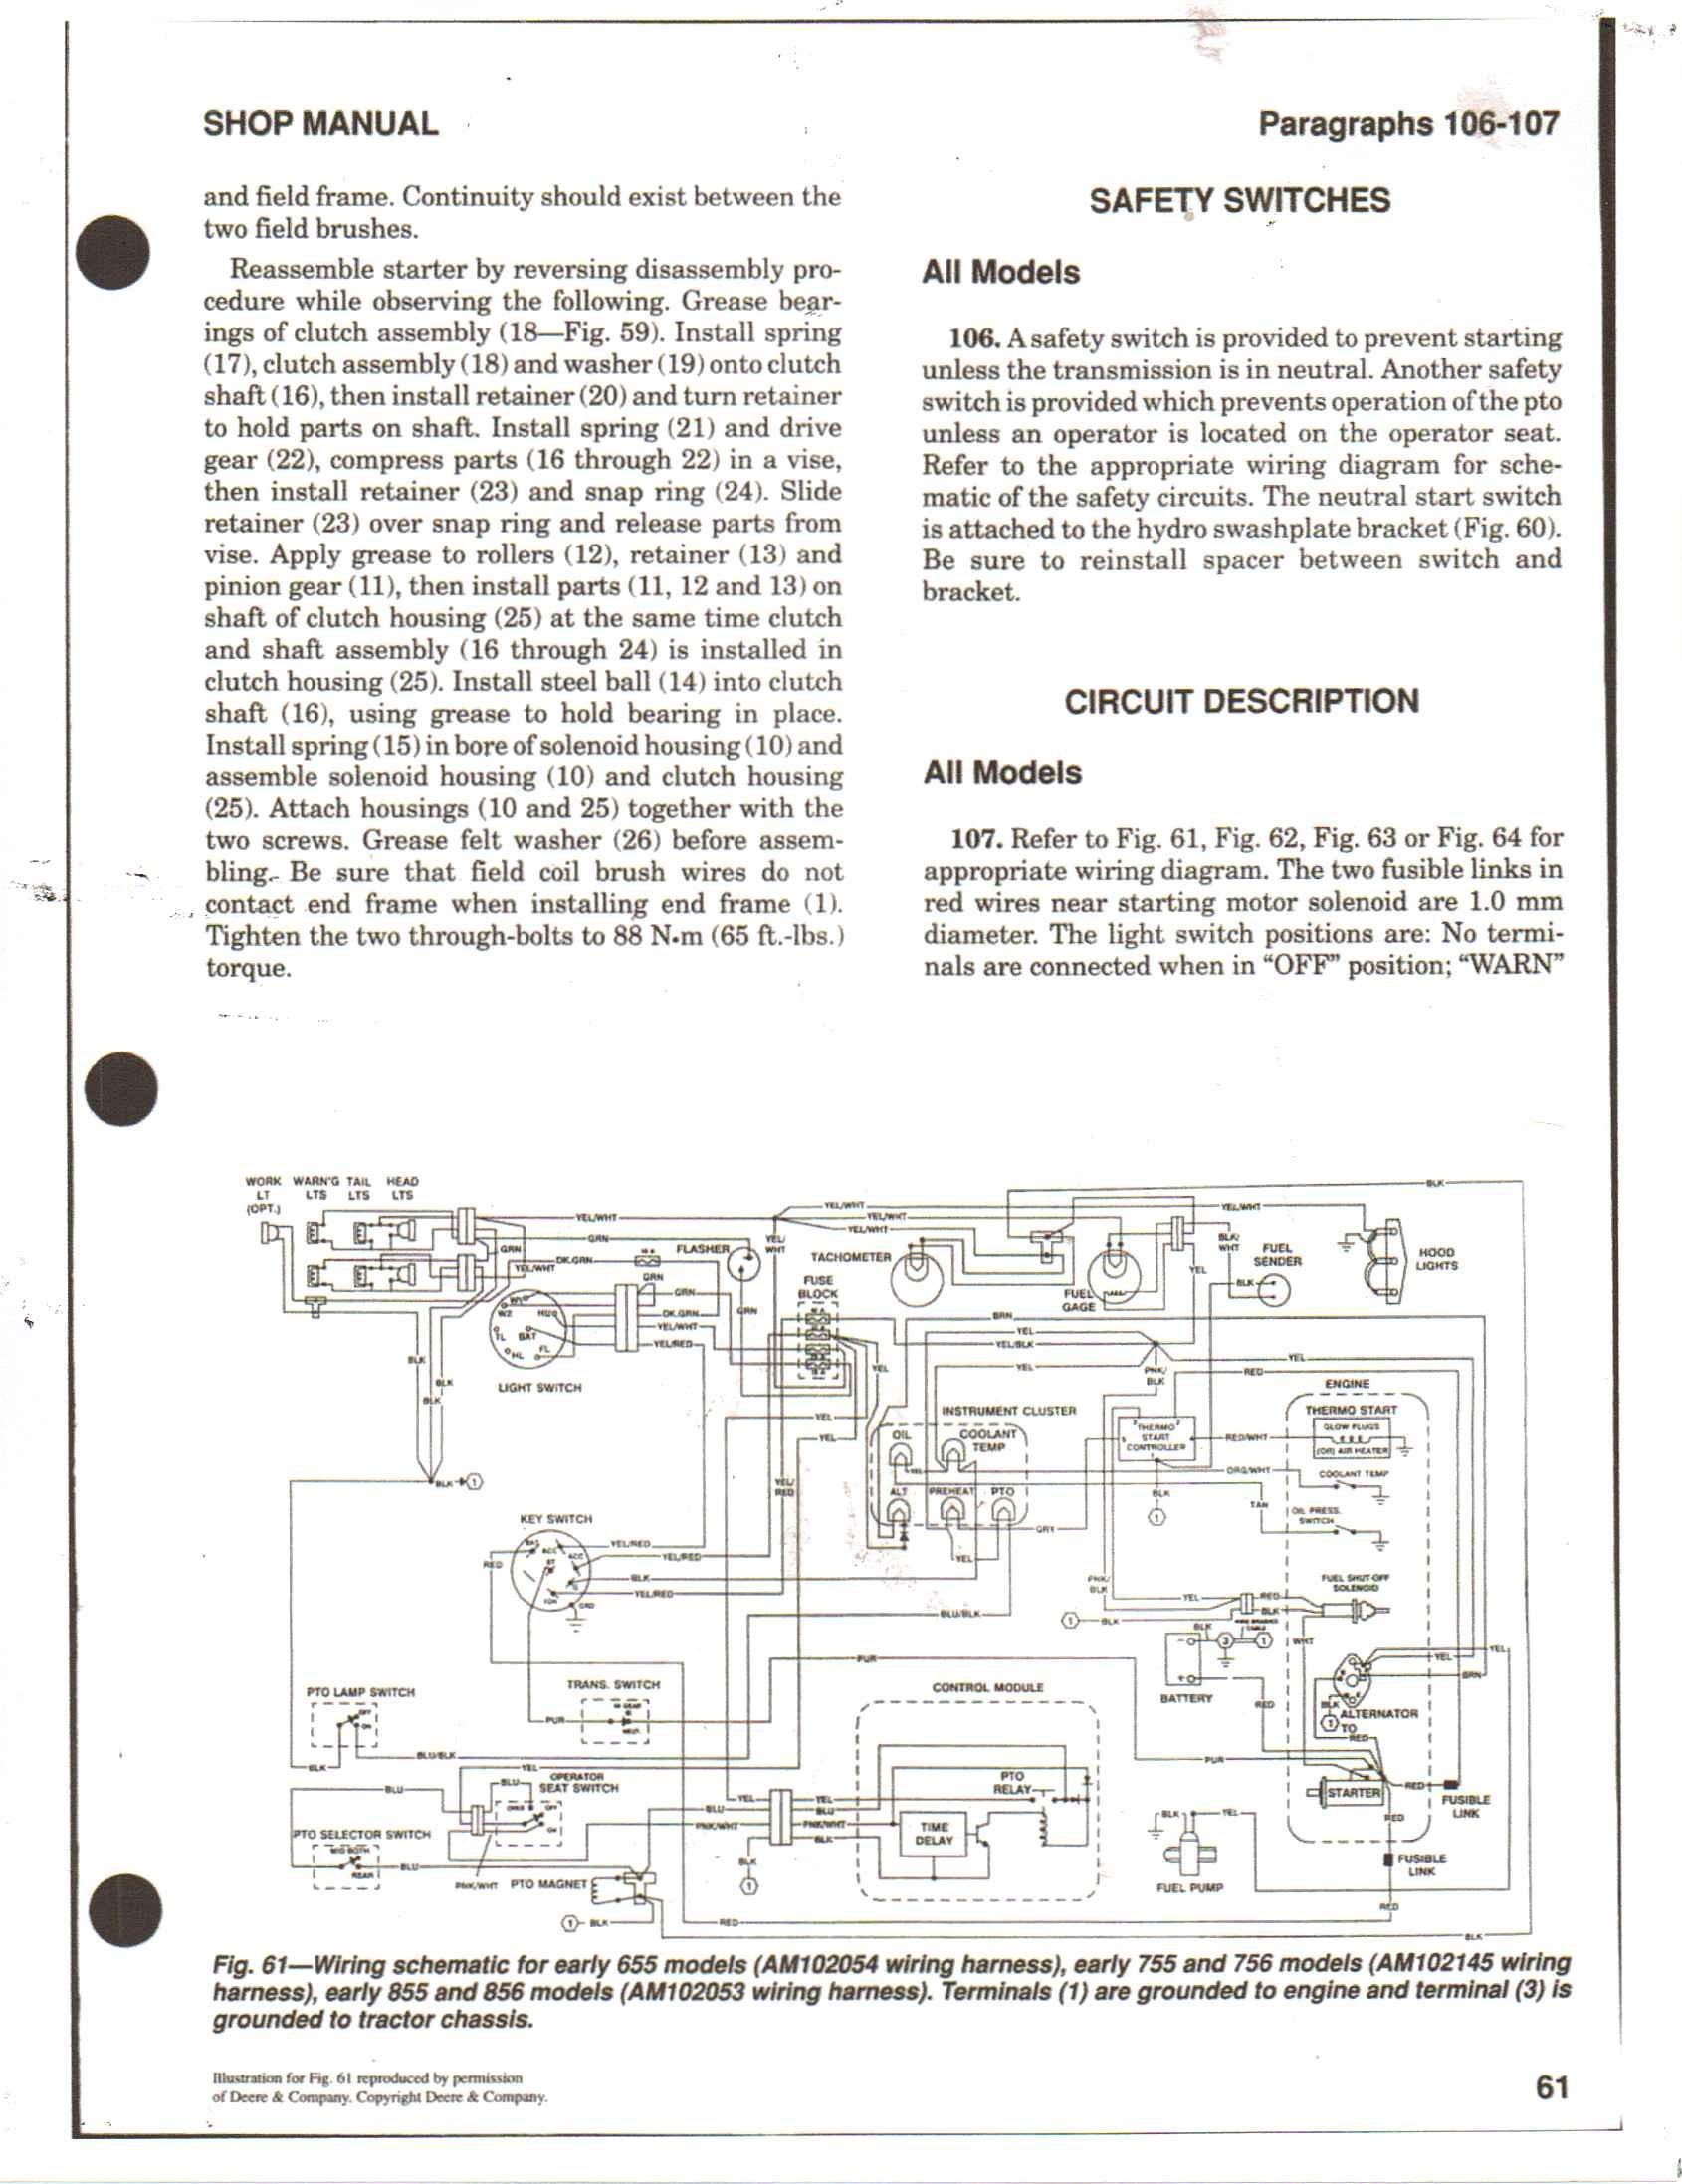 Deere 655 755 wiring diagram